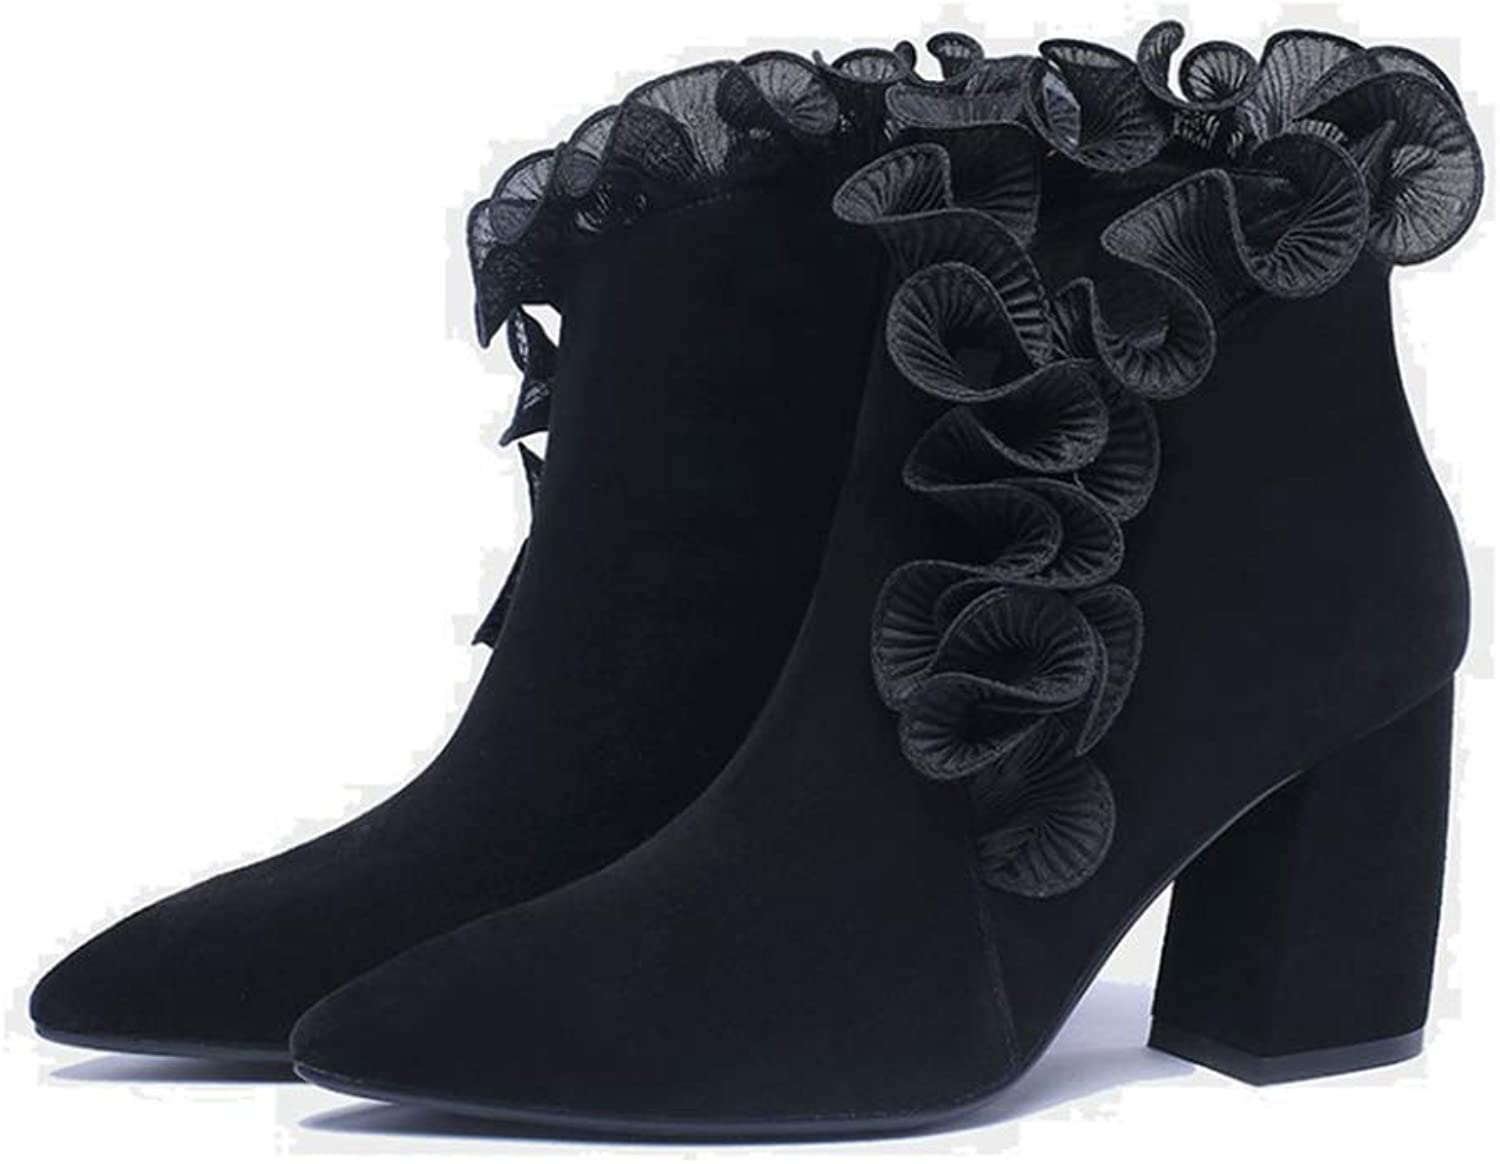 Ladies Booties, Round Head Thick Heel High End Low-Heel Knight Boots Women's Leather Fashion Boots (color   Black, Size   35)